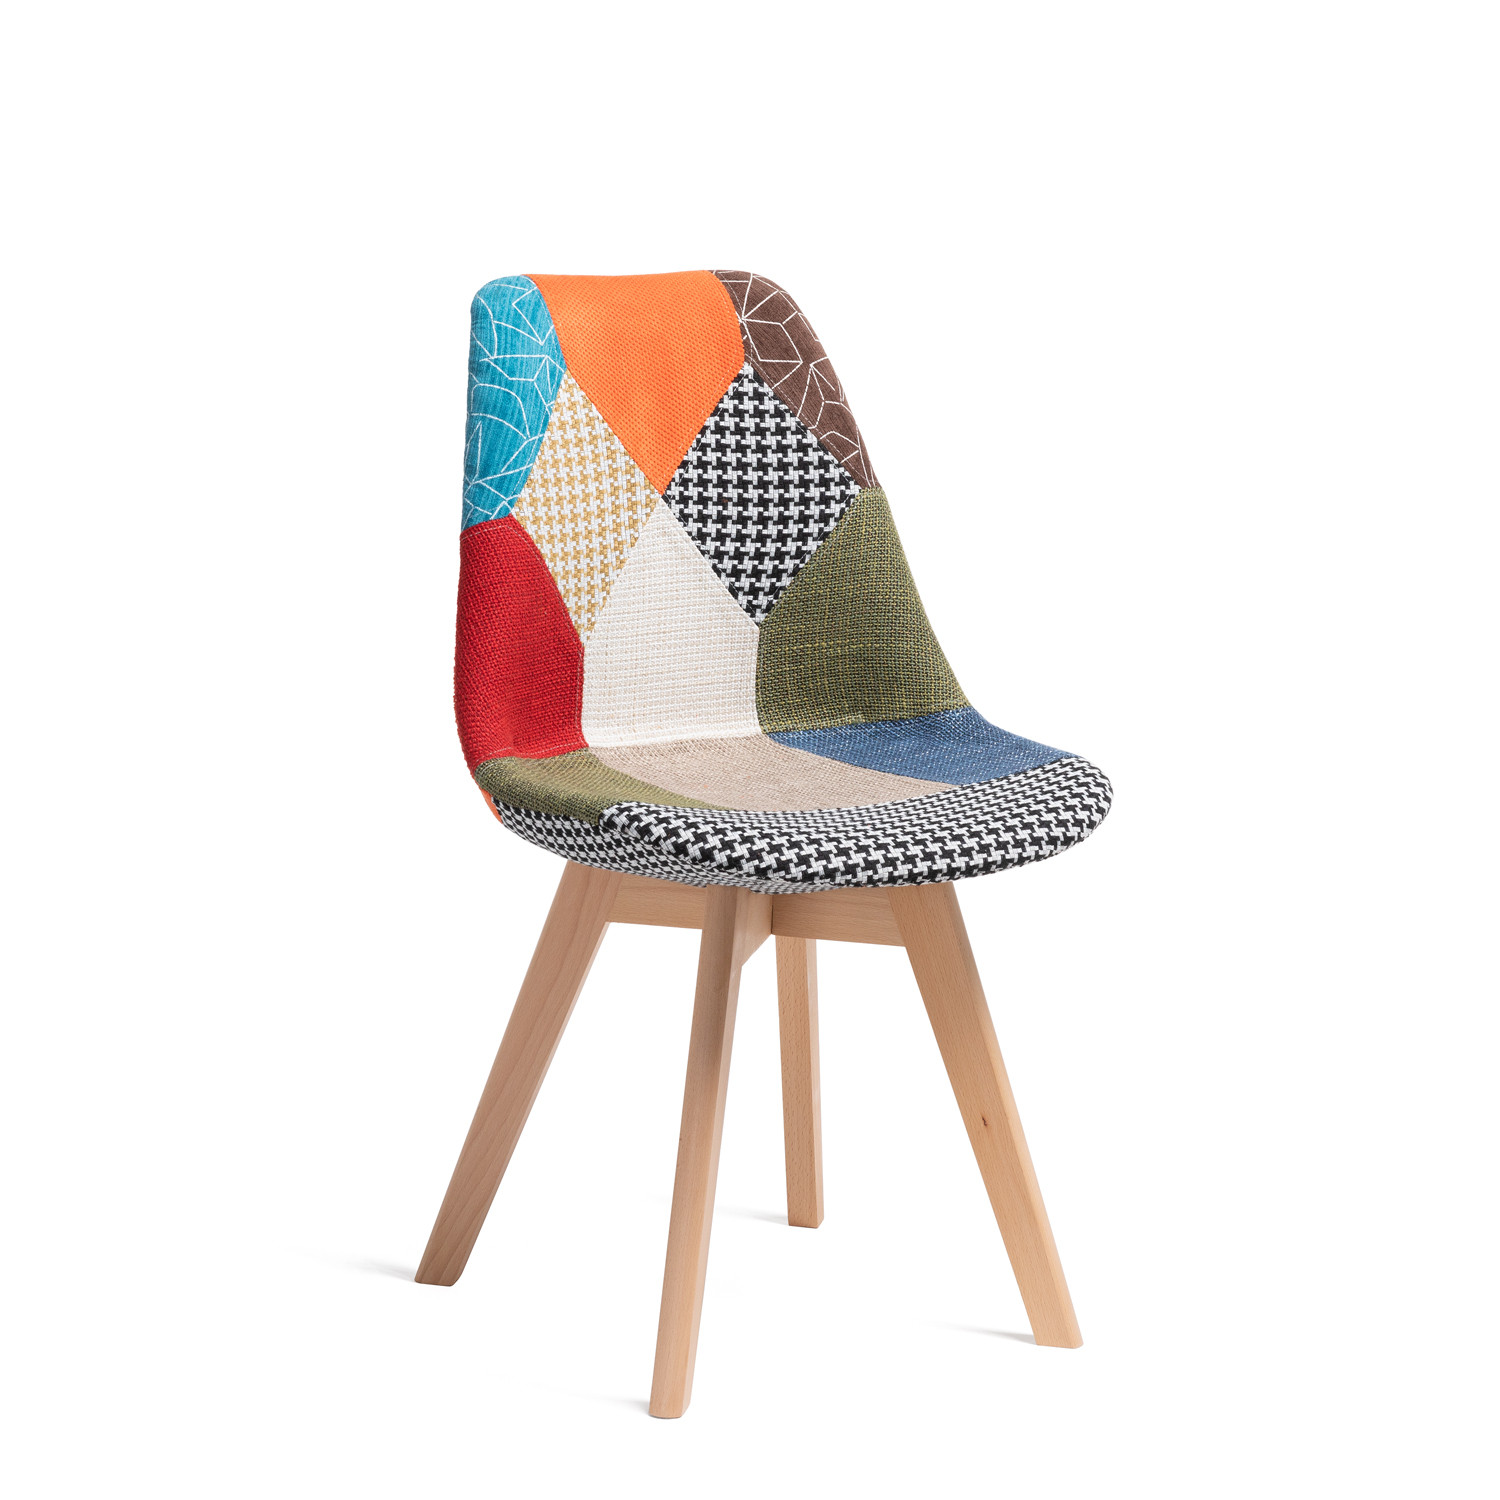 Nordic Chair Upholstered Patchwork, gallery image 520540